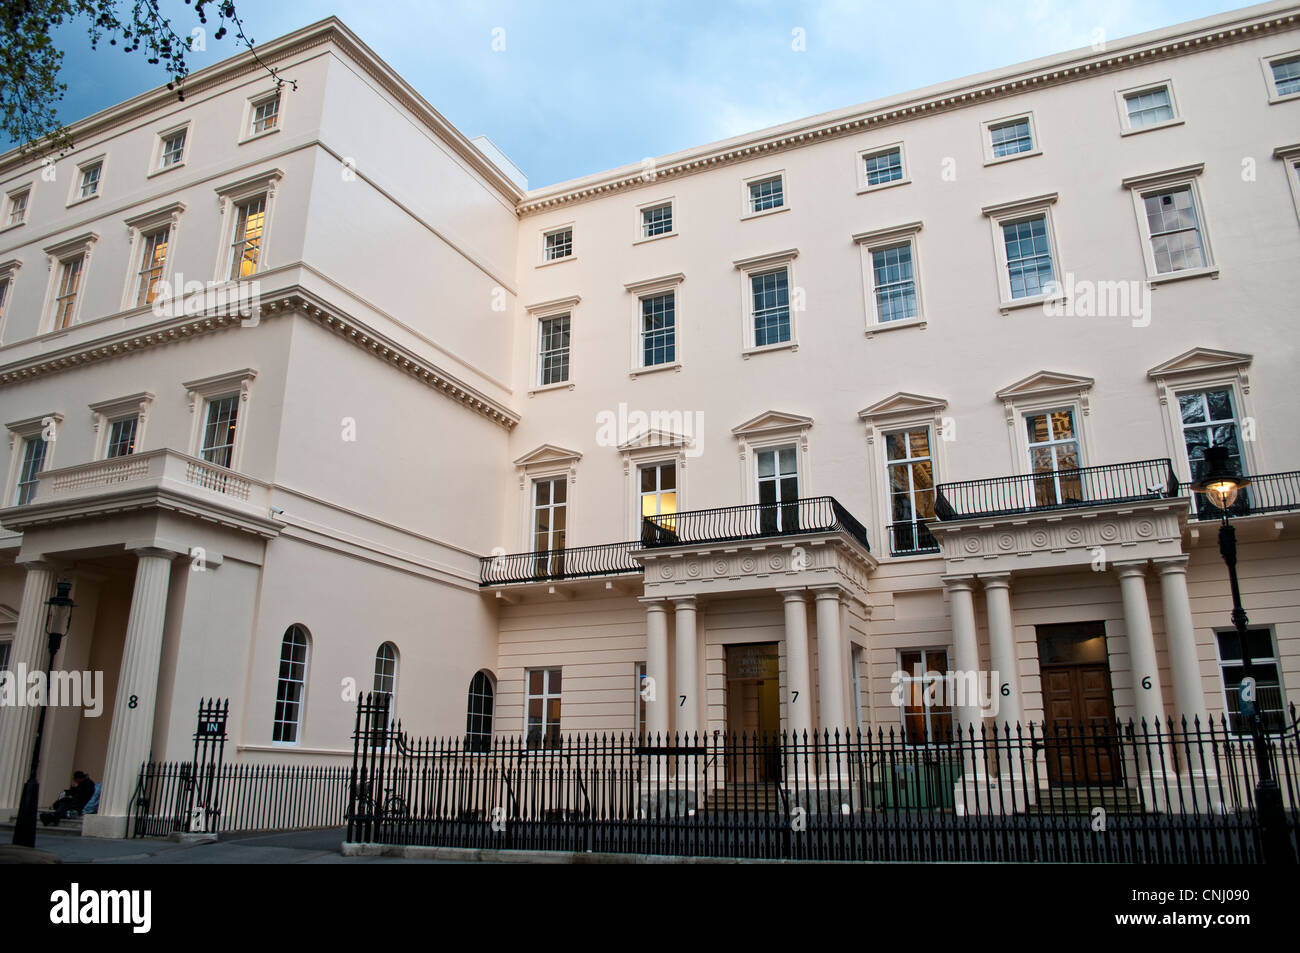 Royal society building listed houses on carlton house for 18 carlton house terrace